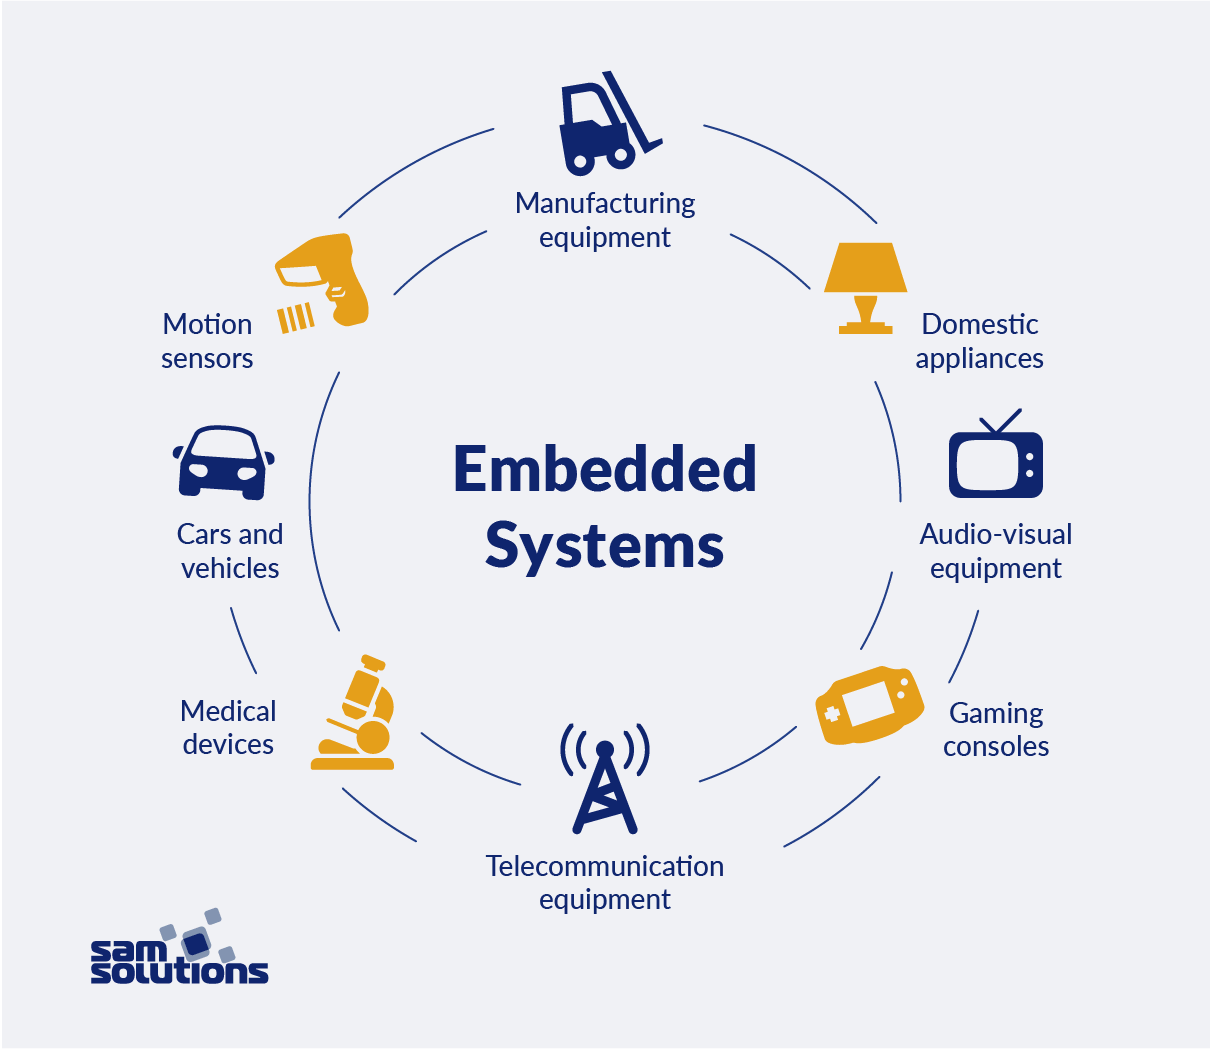 The applications of embedded systems